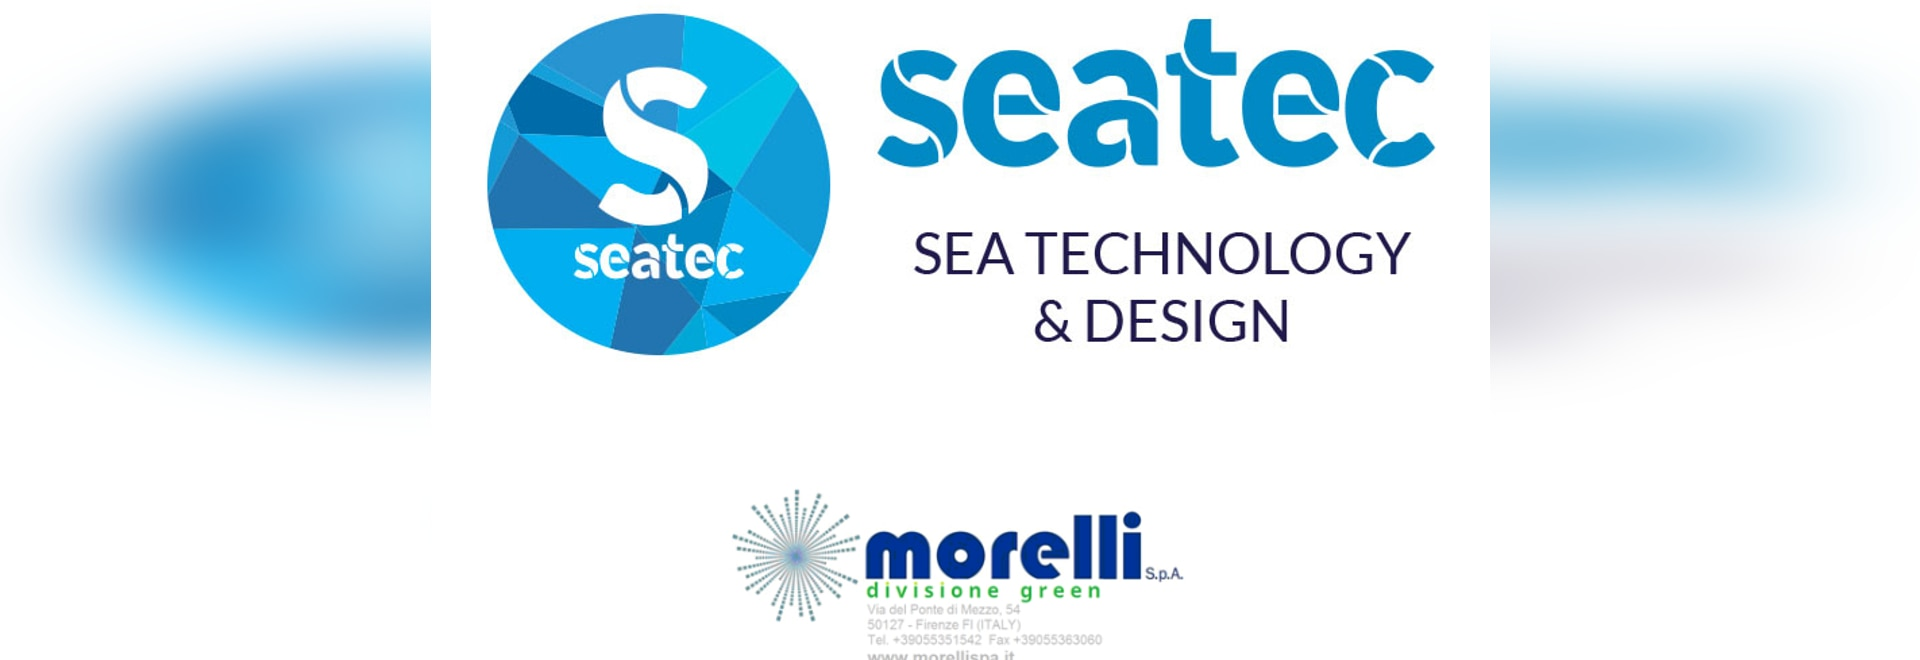 With Morelli S.p.a. at Seatec 2017